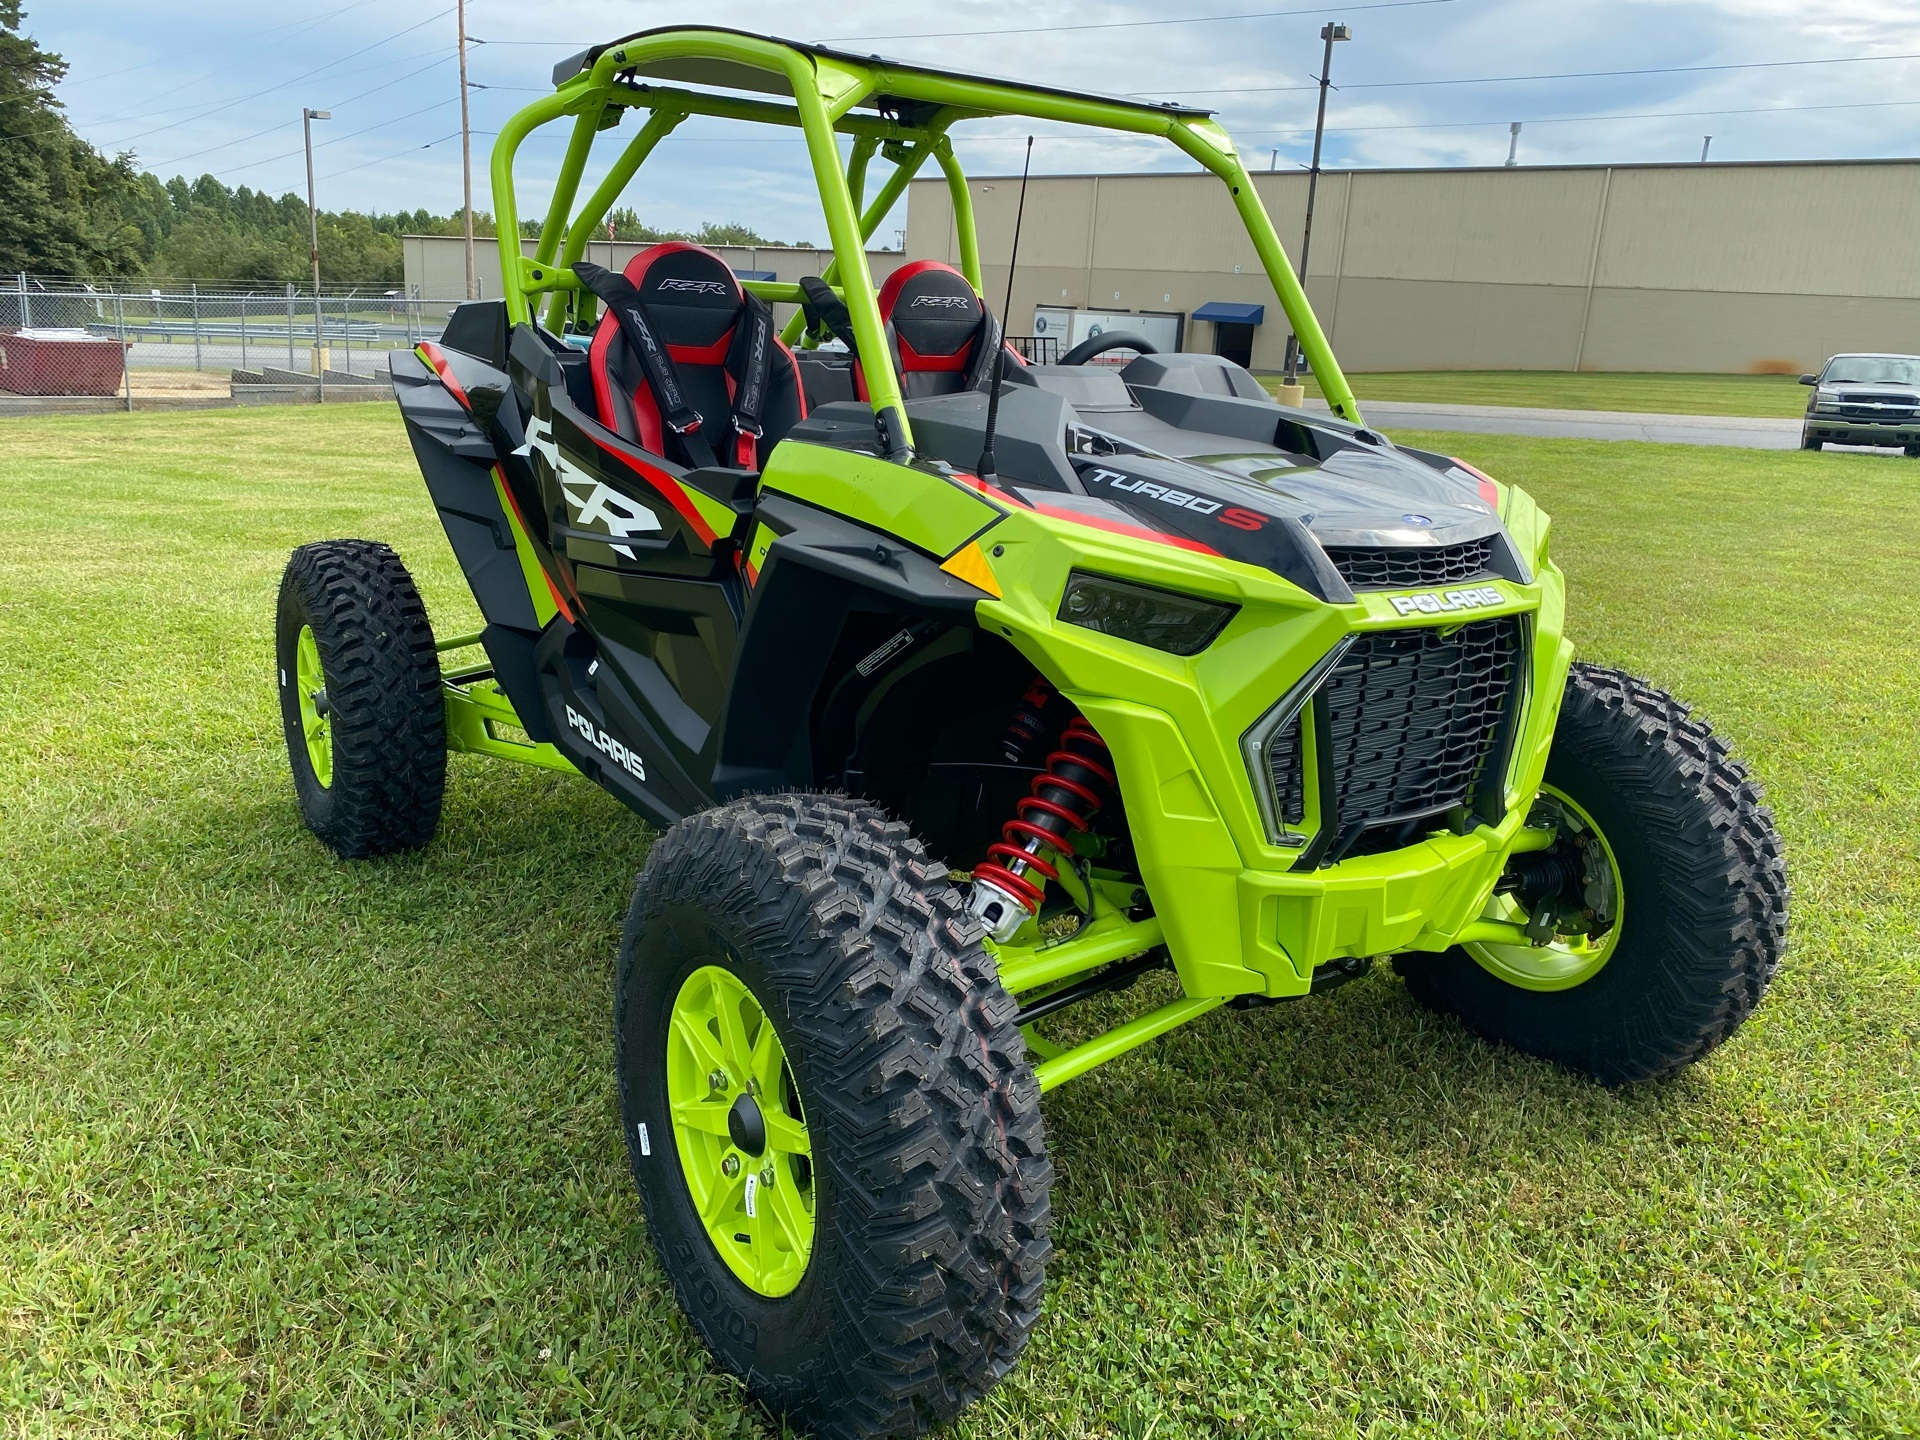 2021 Polaris RZR Turbo S Lifted Lime LE in Statesville, North Carolina - Photo 2